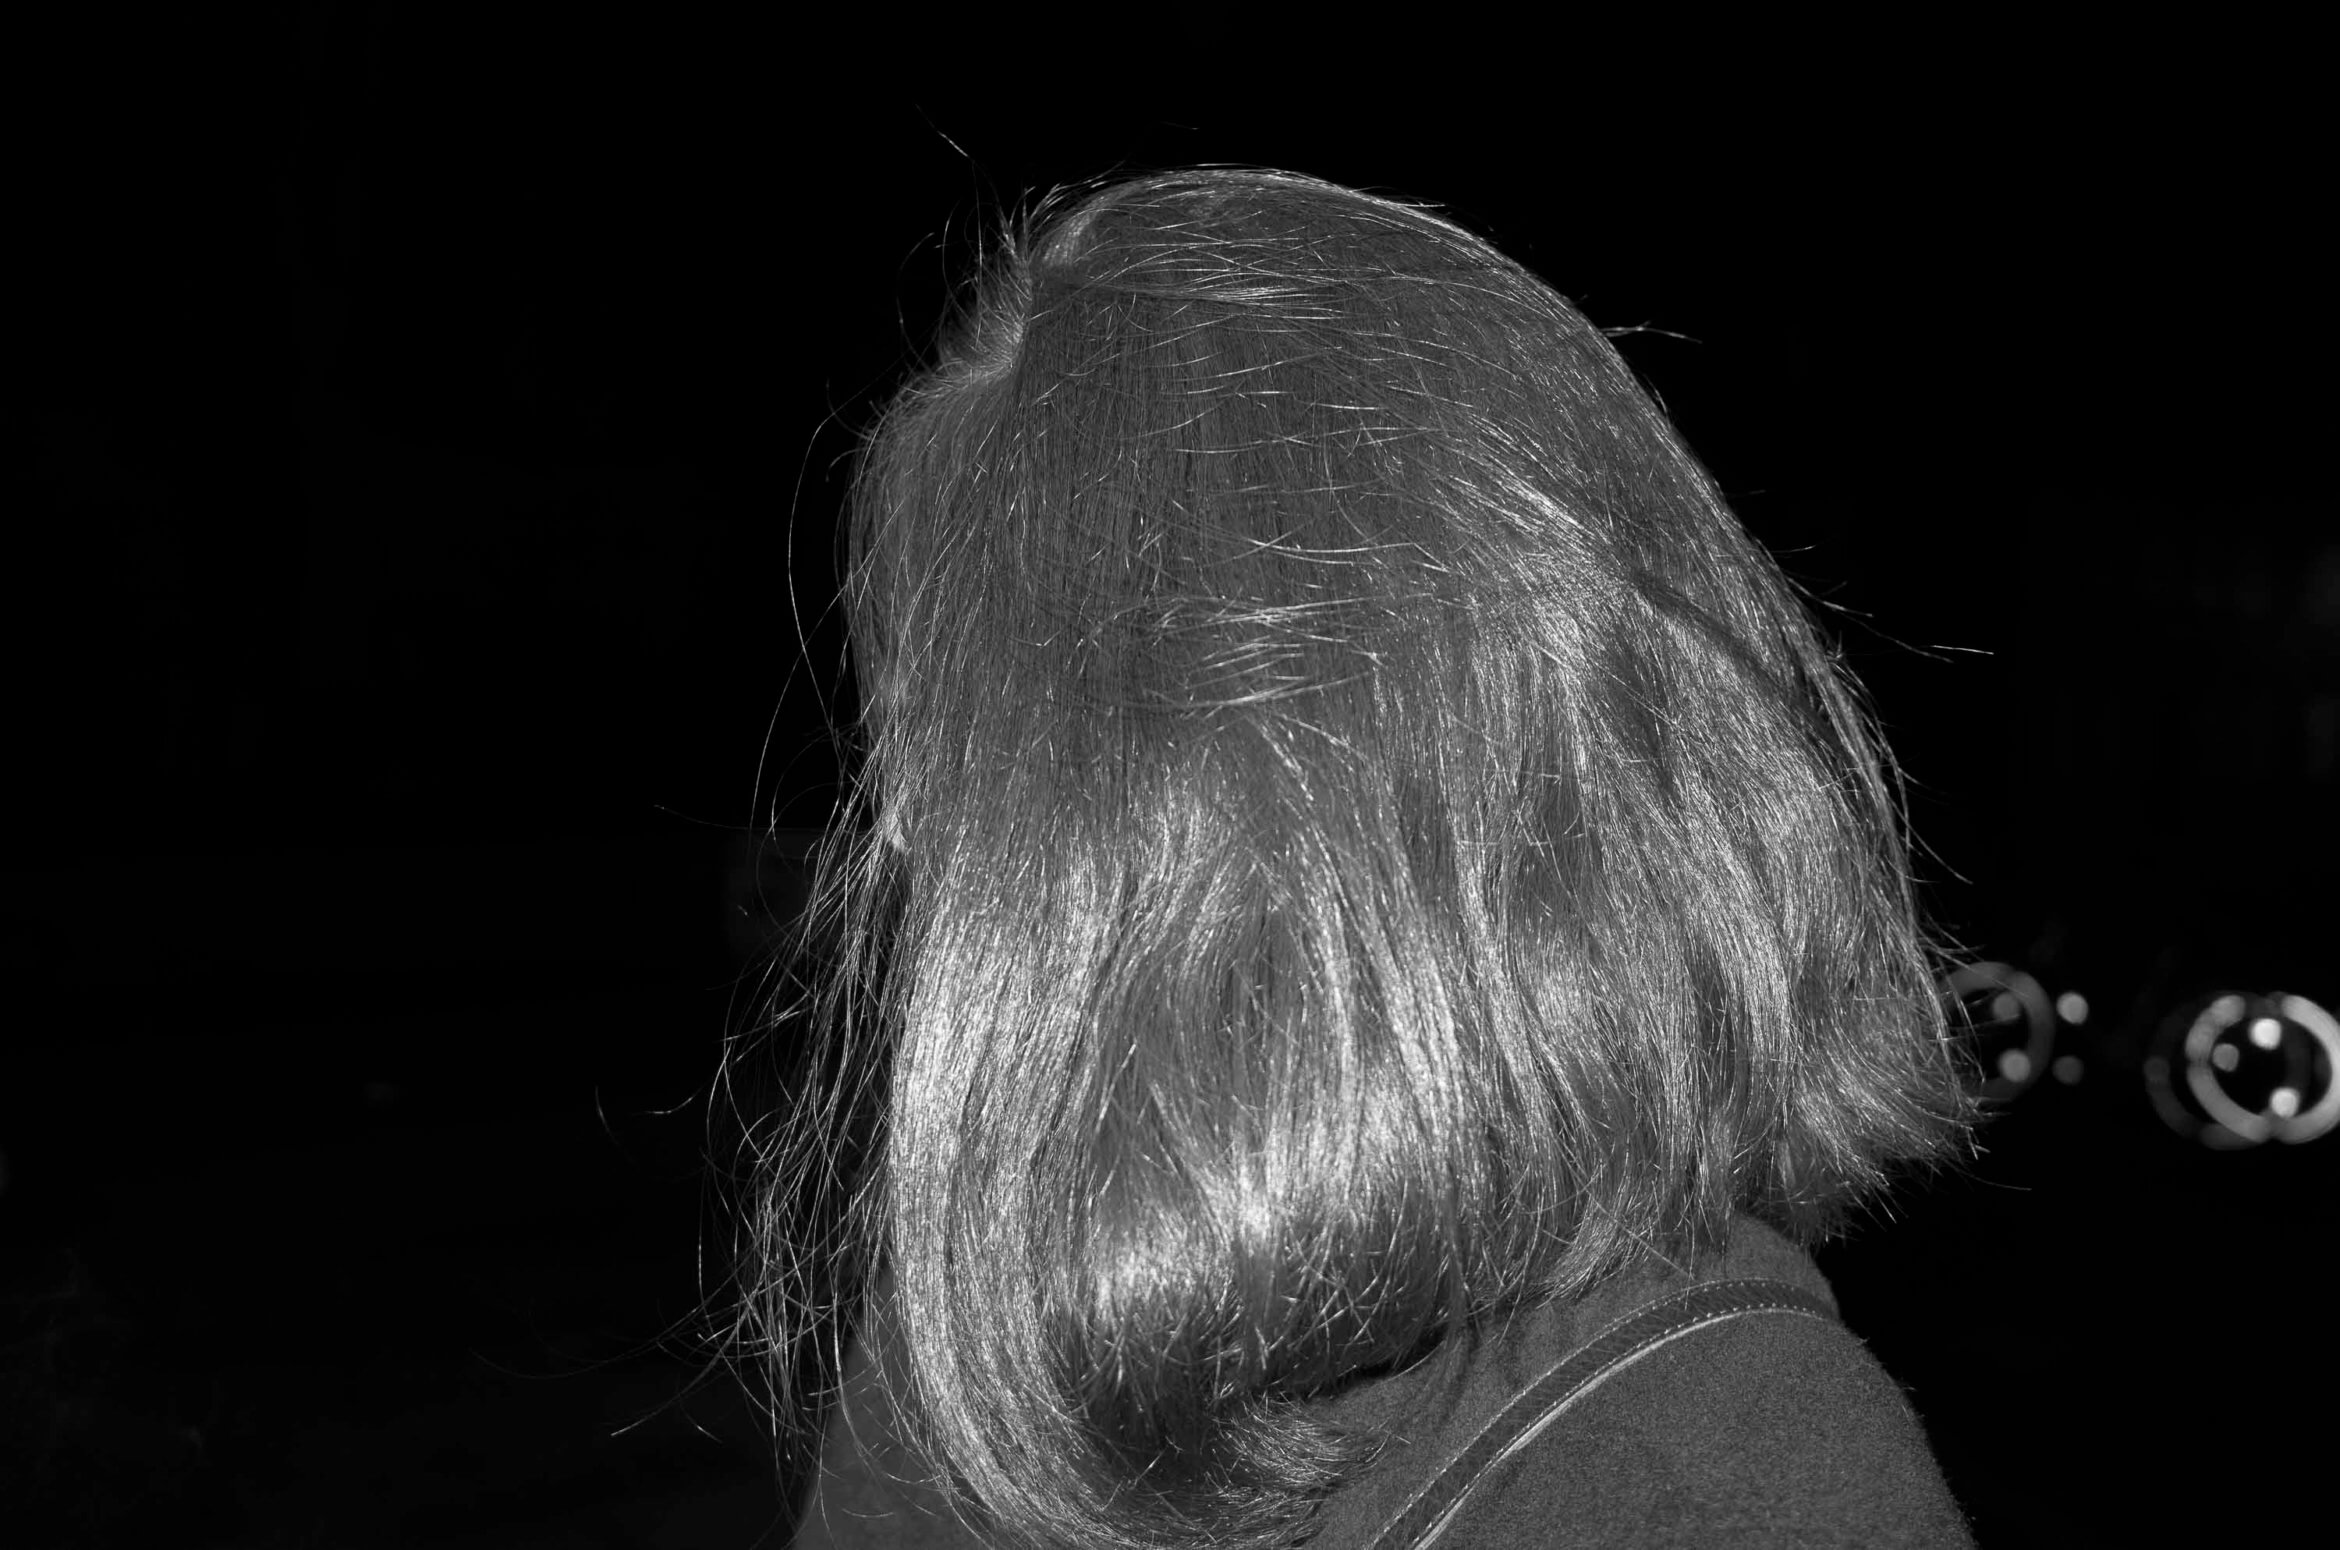 Frau | Hair | Blackandwhite | Photography